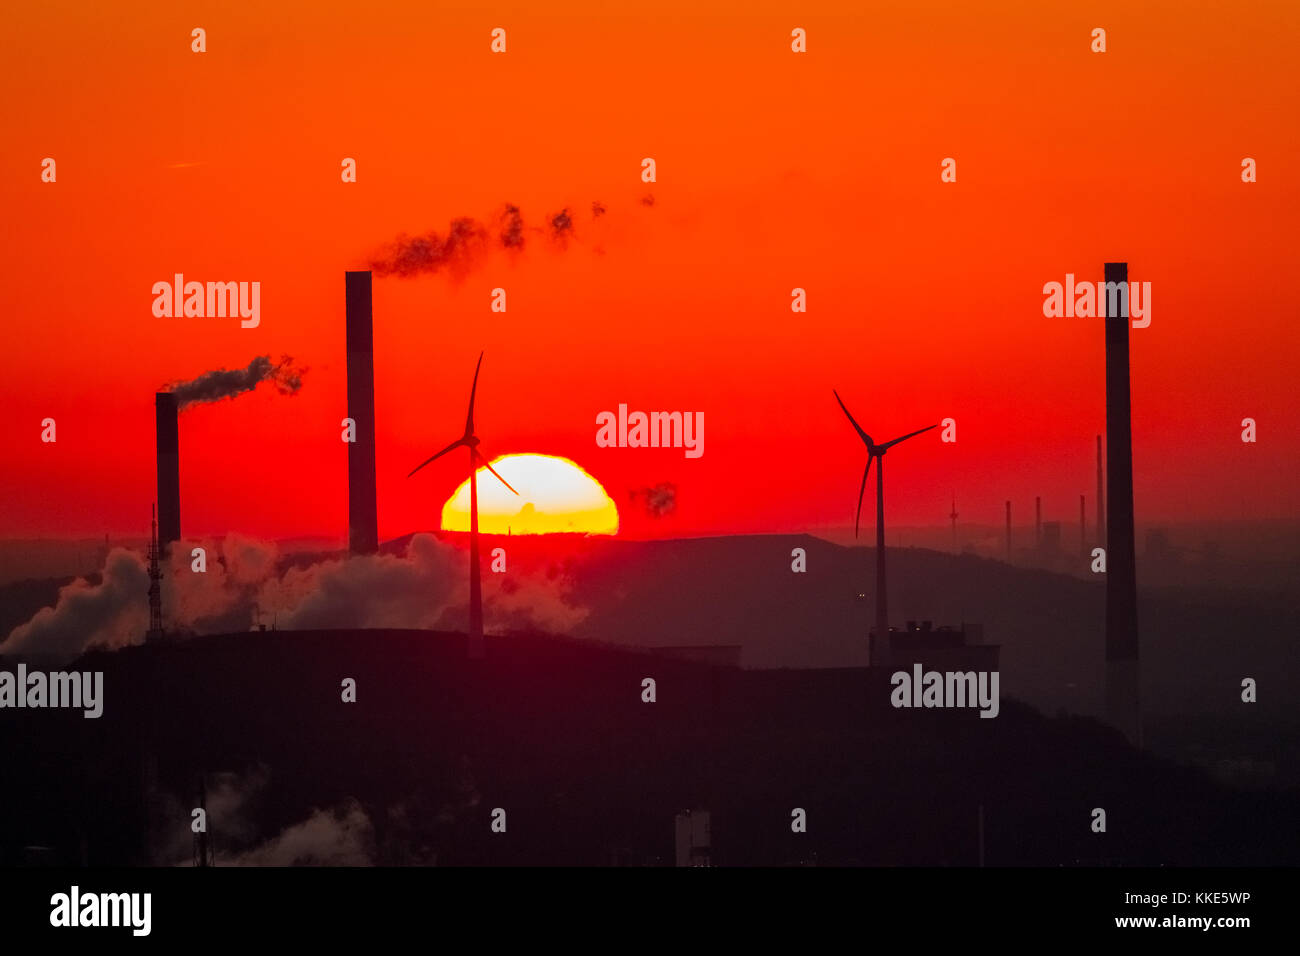 Sunset against the backdrop of the power plant Scholven, Uniper Kraftwerke GmbH, Rigips GmbH Scholven, red sky, - Stock Image